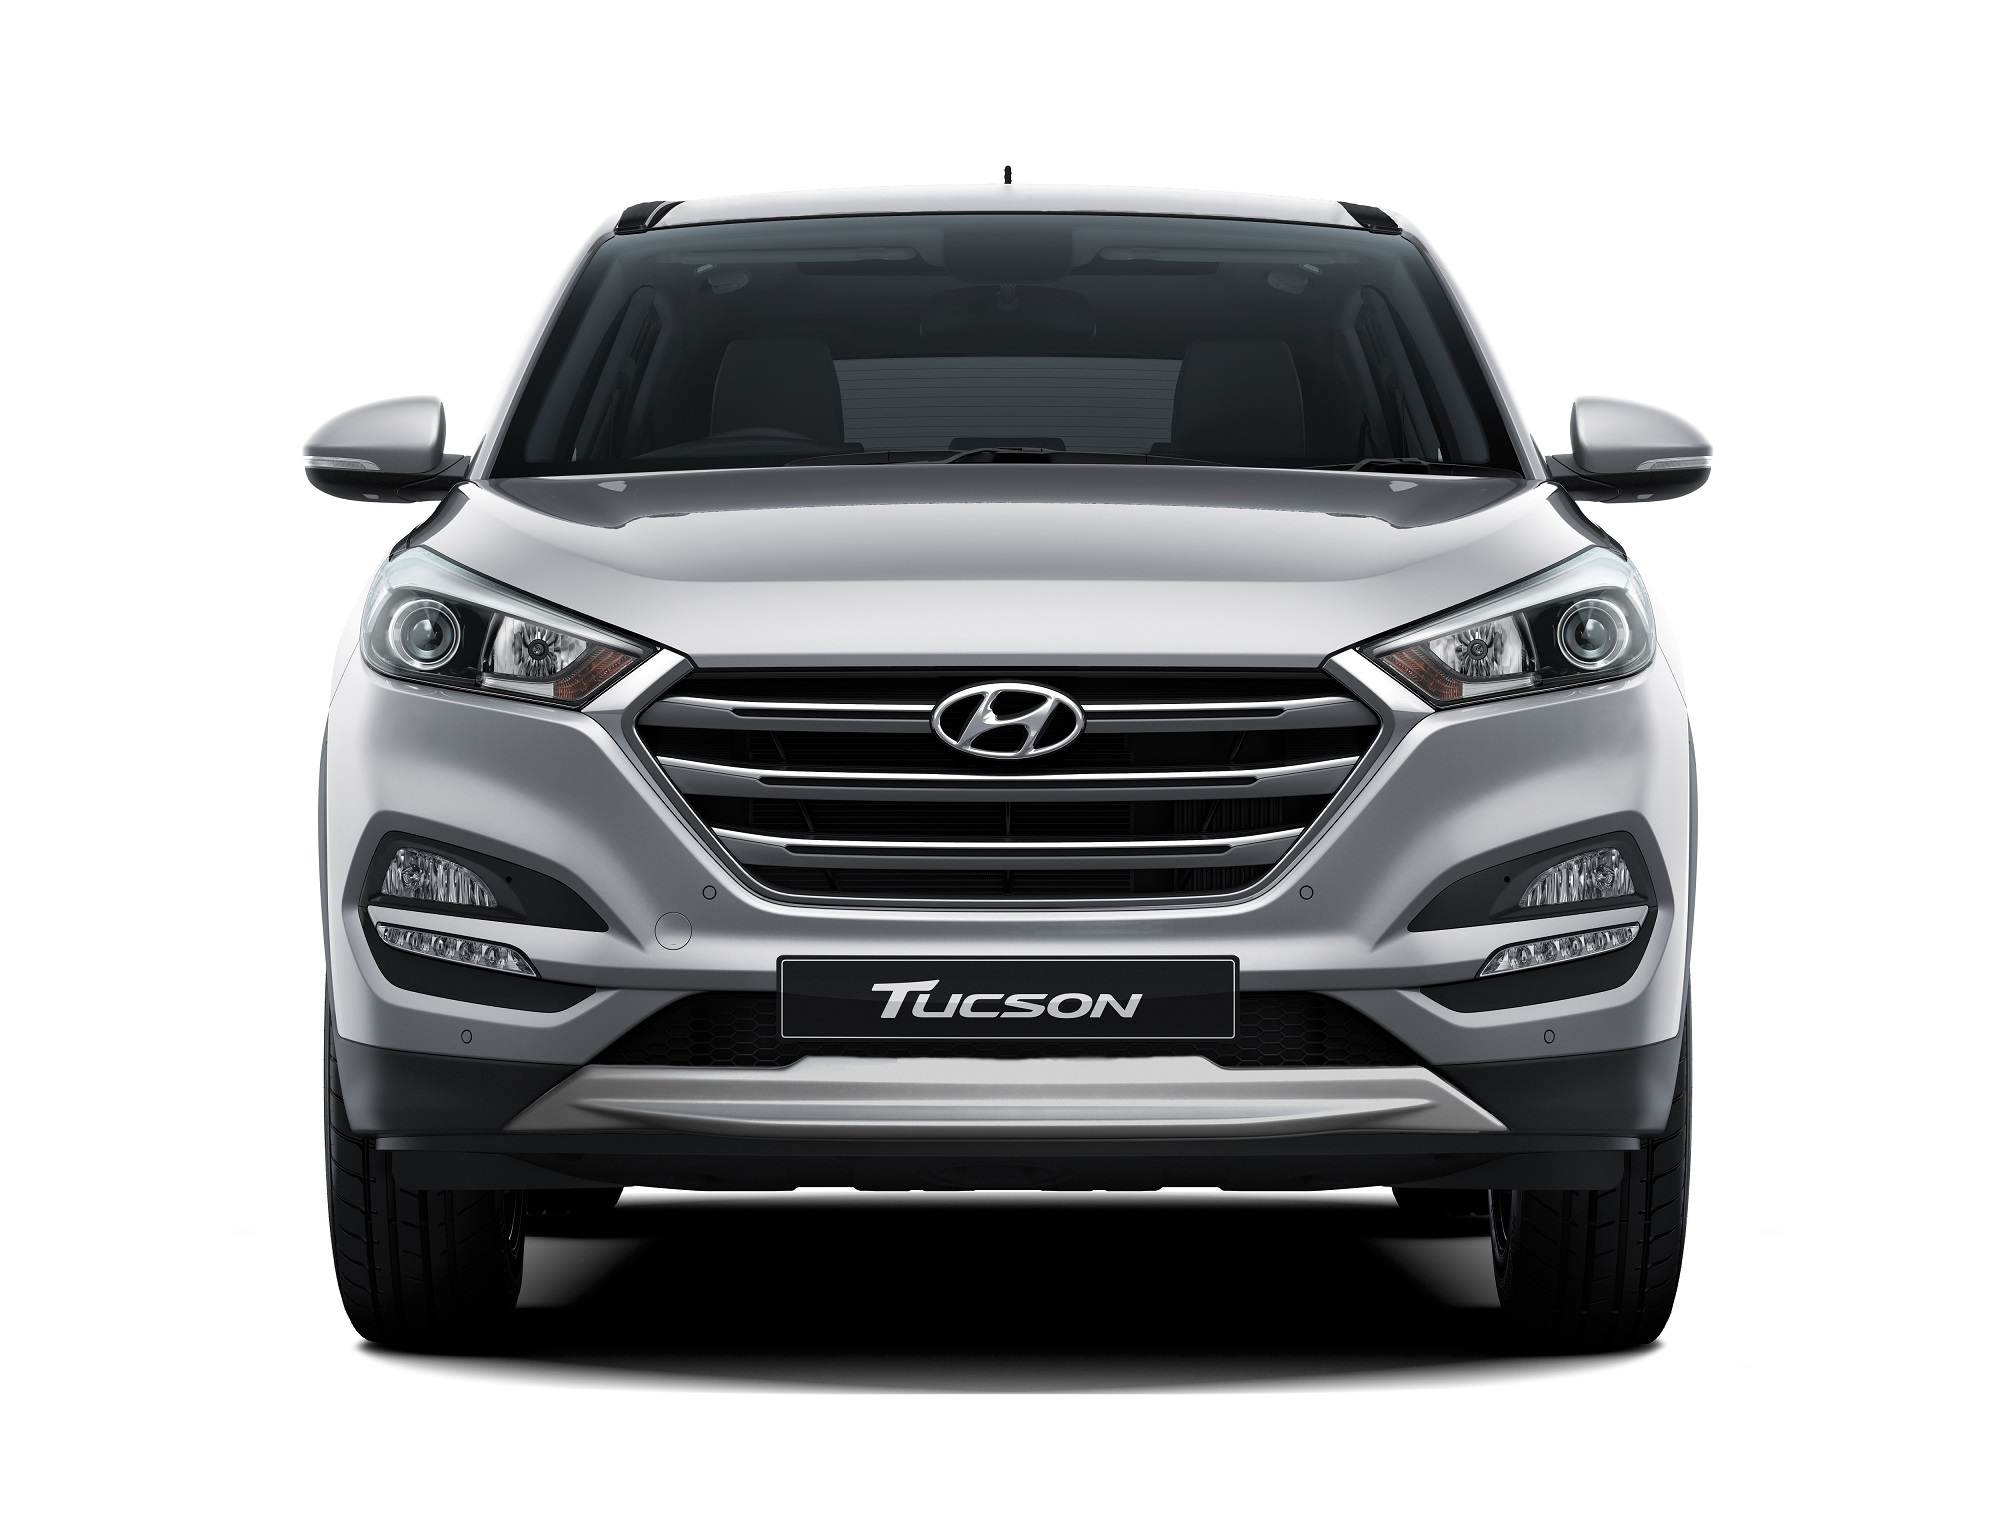 Hyundai Tucson Malaysia Launched Power Steering Leak Forums Forum 2016 Front View Designed Based On Hyundais